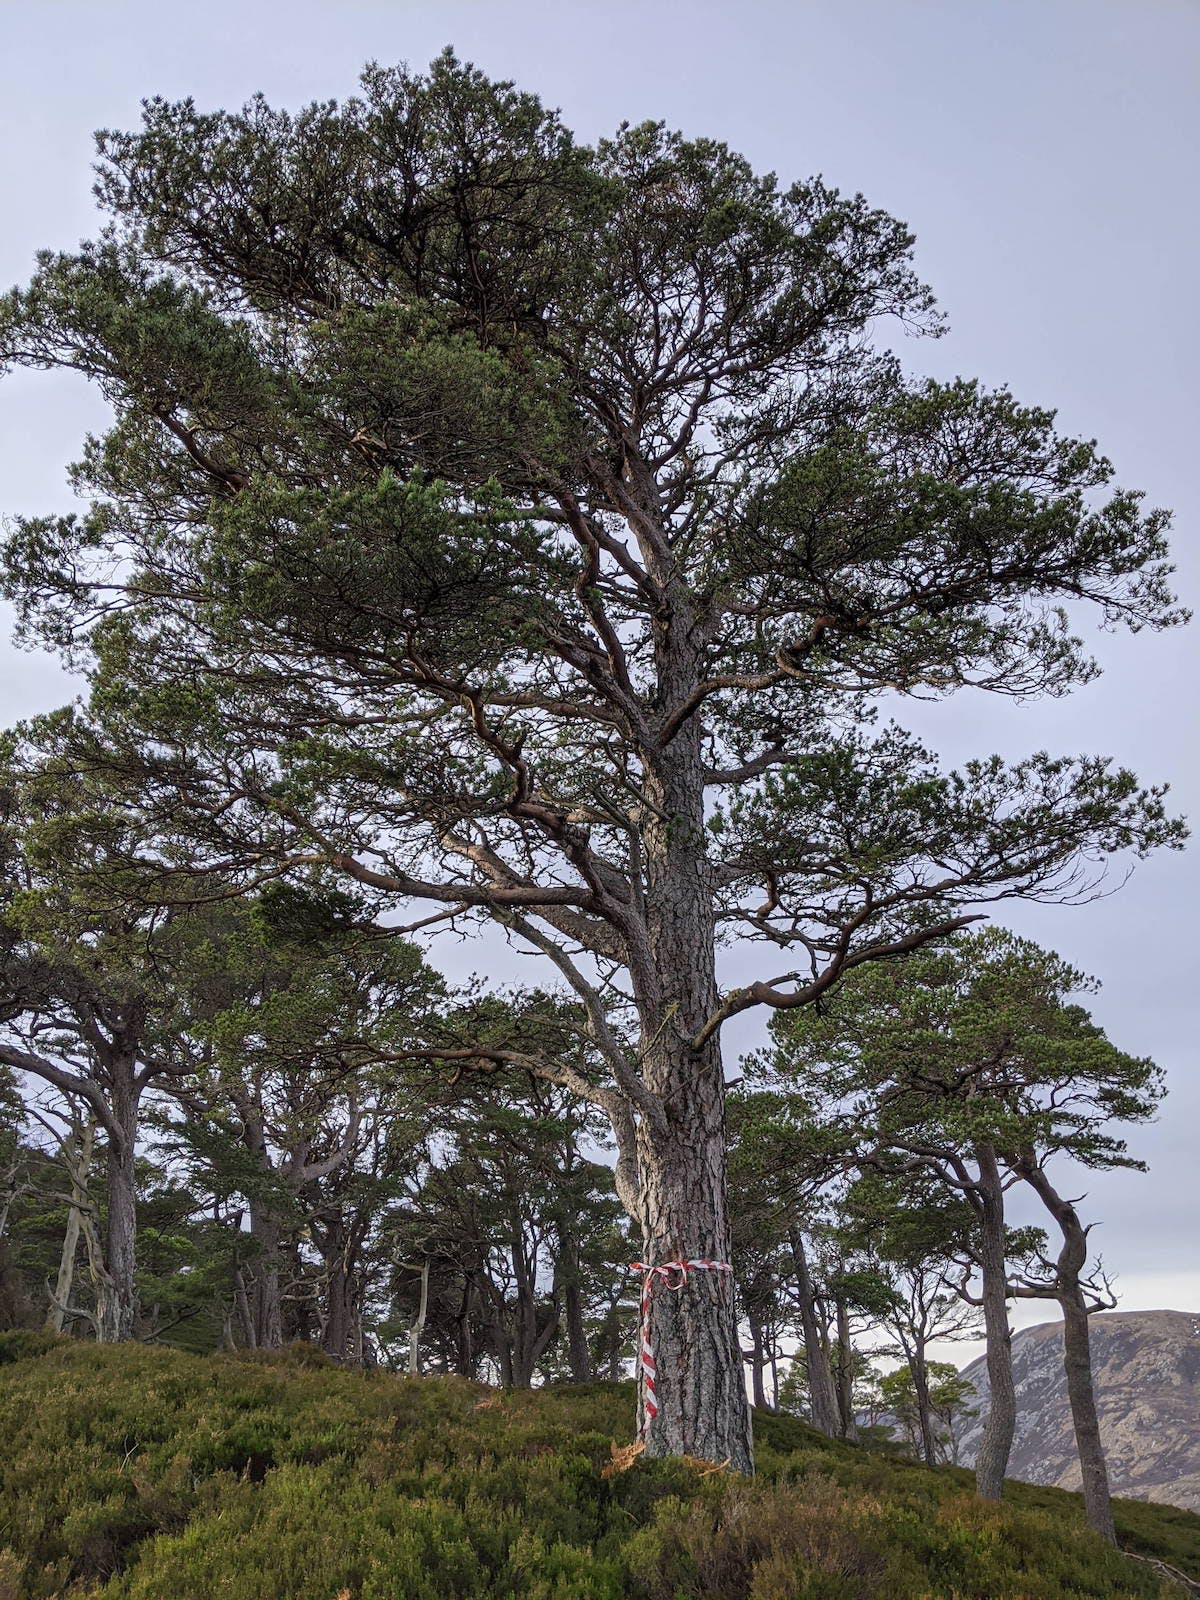 A red and white tape wraps around a tall scots pine. This Scots pine was chosen as the site of the white-tailed eagle nest platform